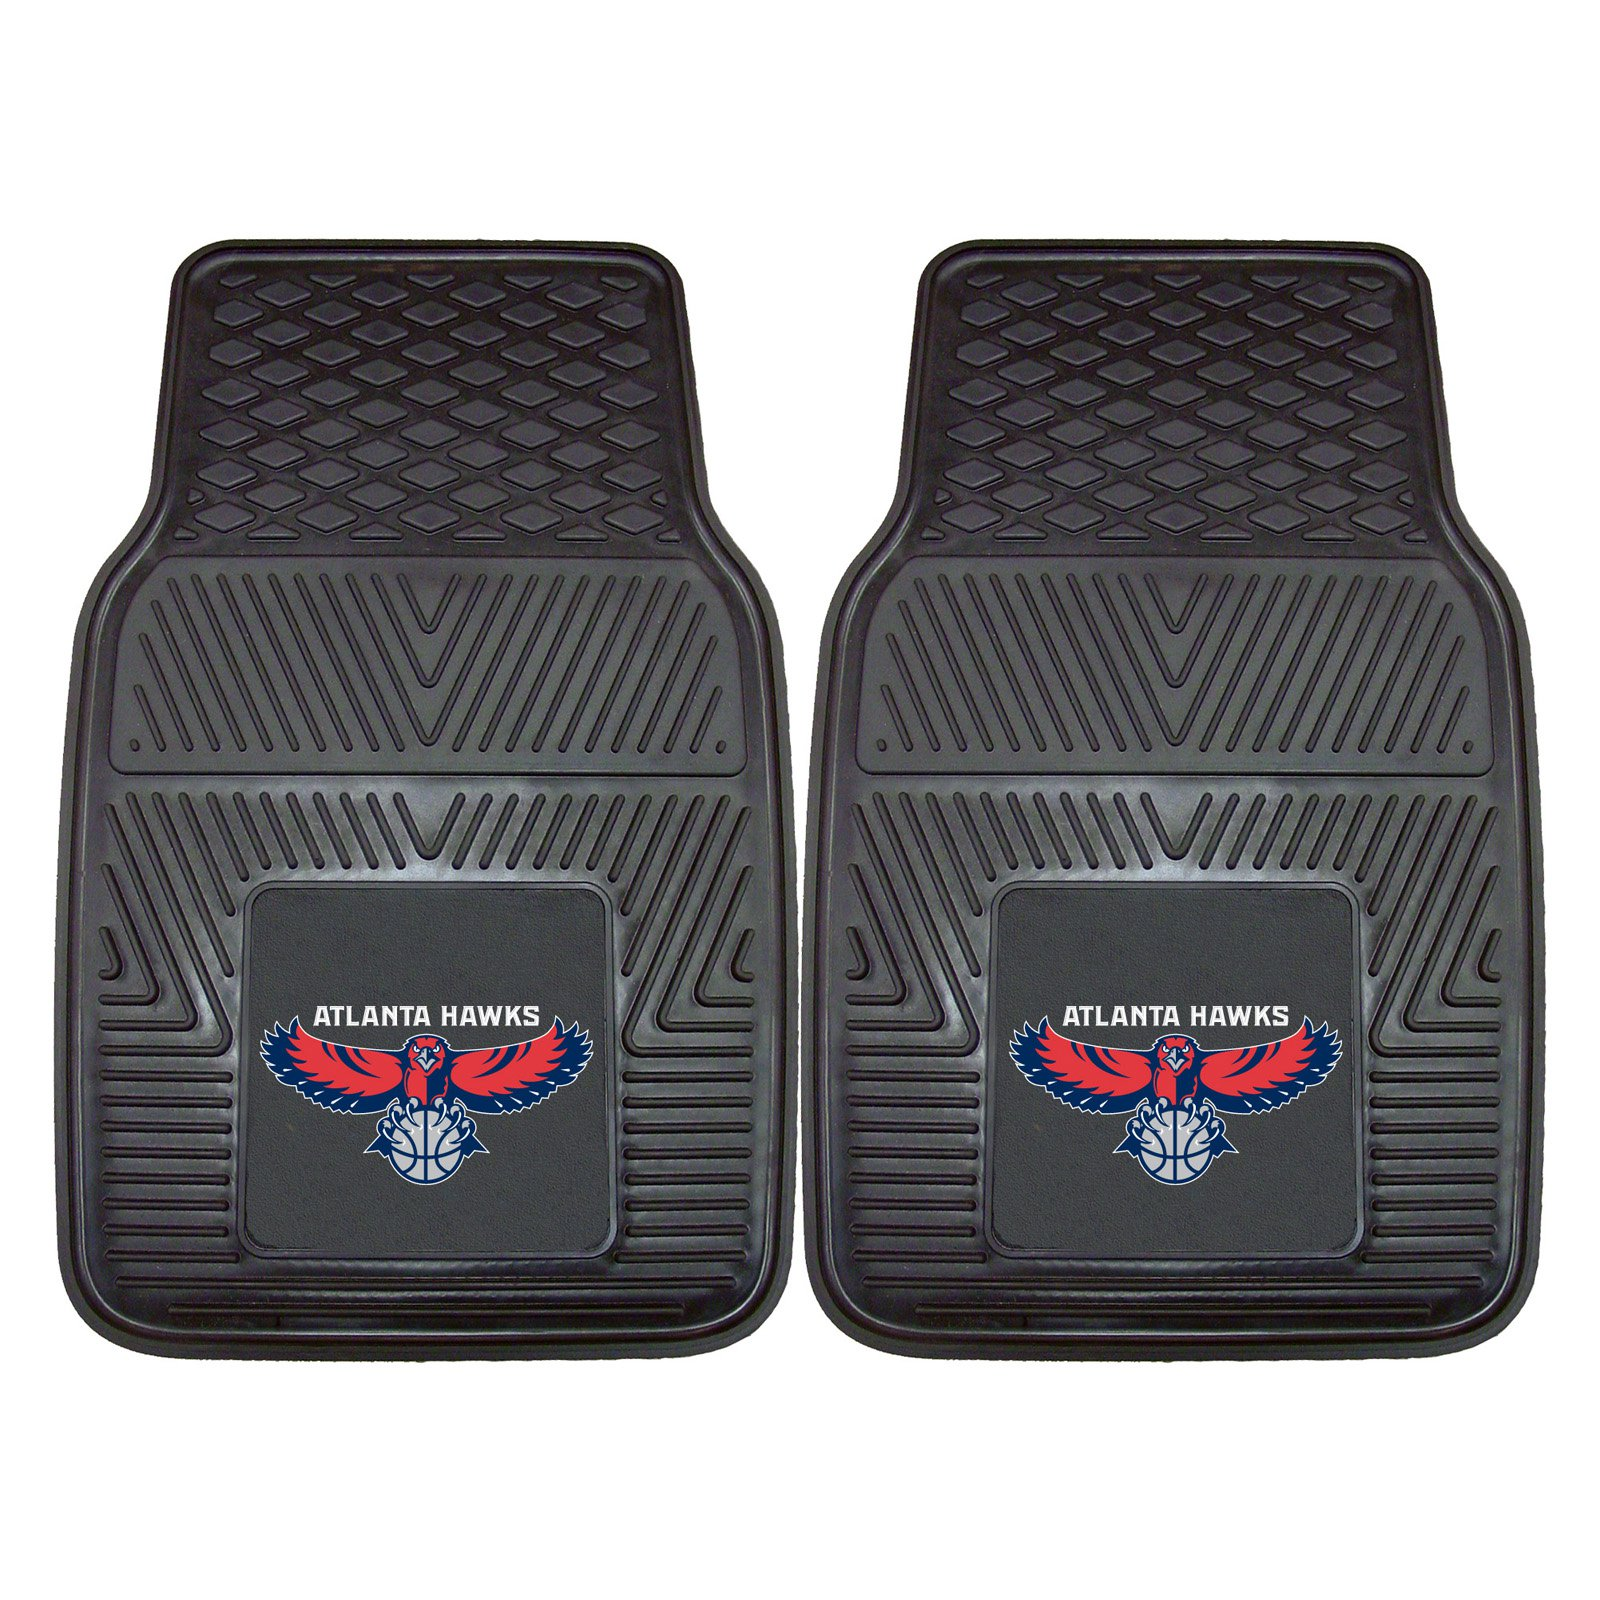 Fanmats NBA 18 x 27 in. Vinyl Car Mat